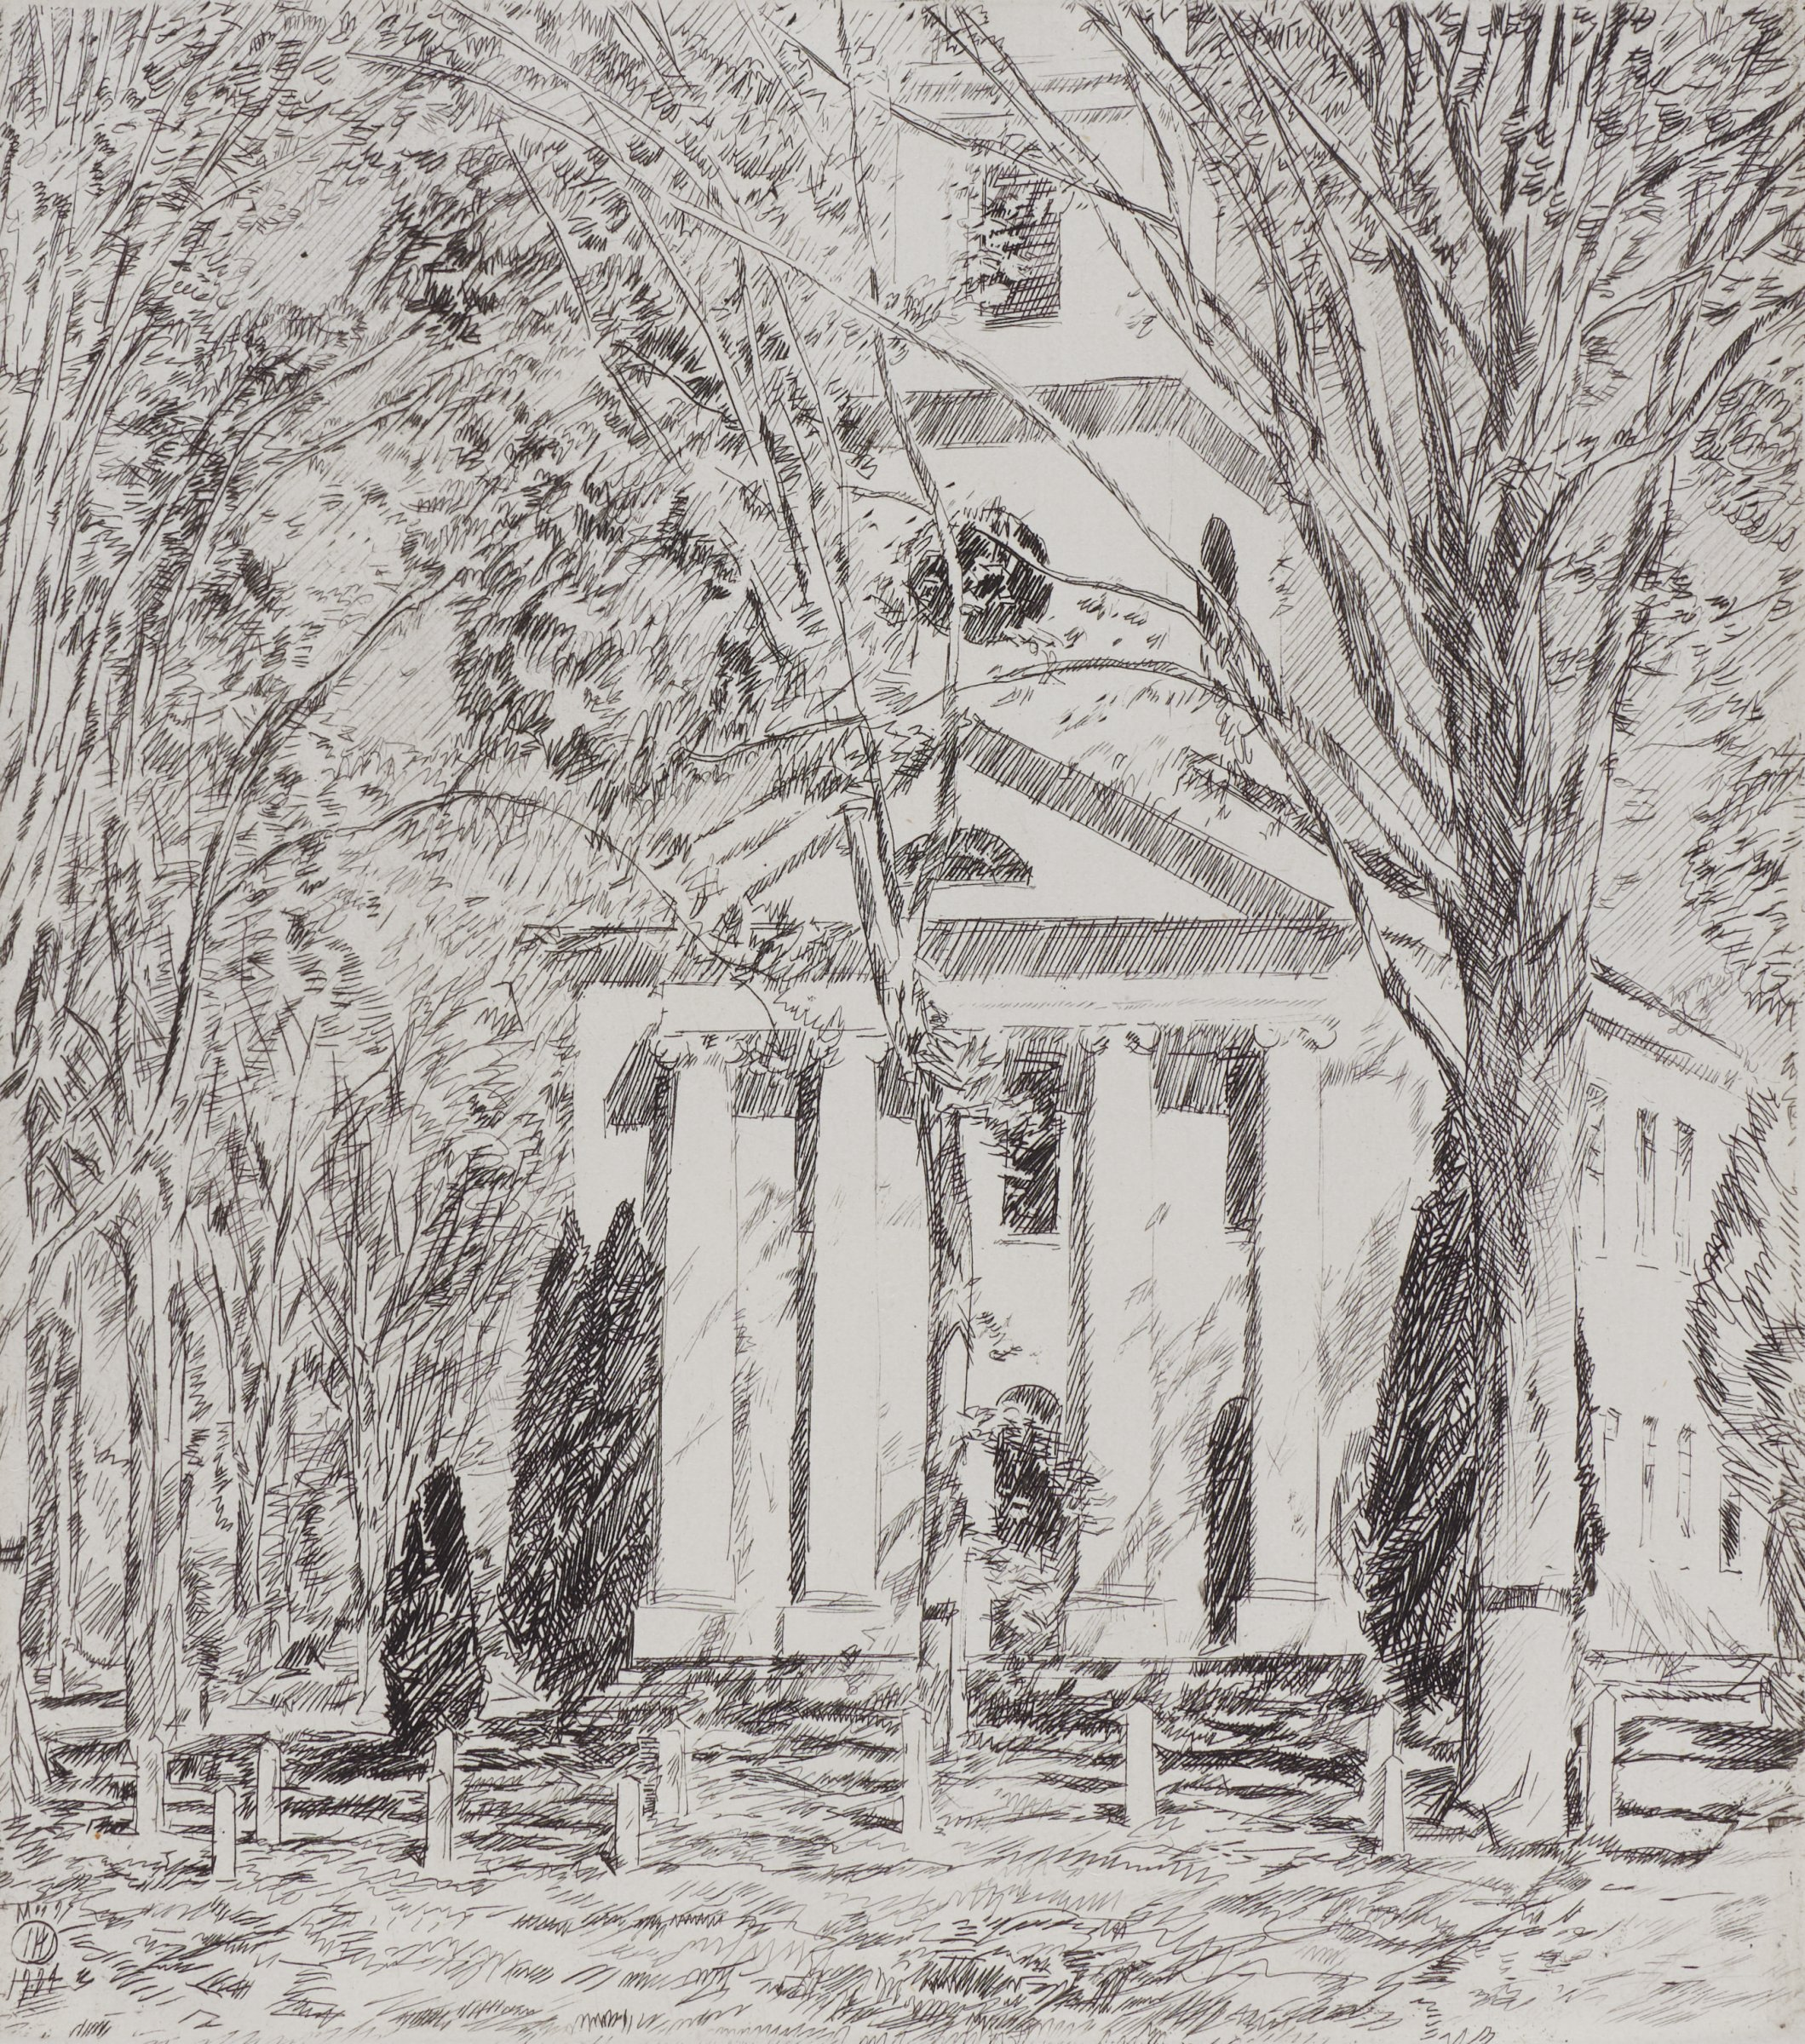 Church at Old Lyme, Childe Hassam, etching